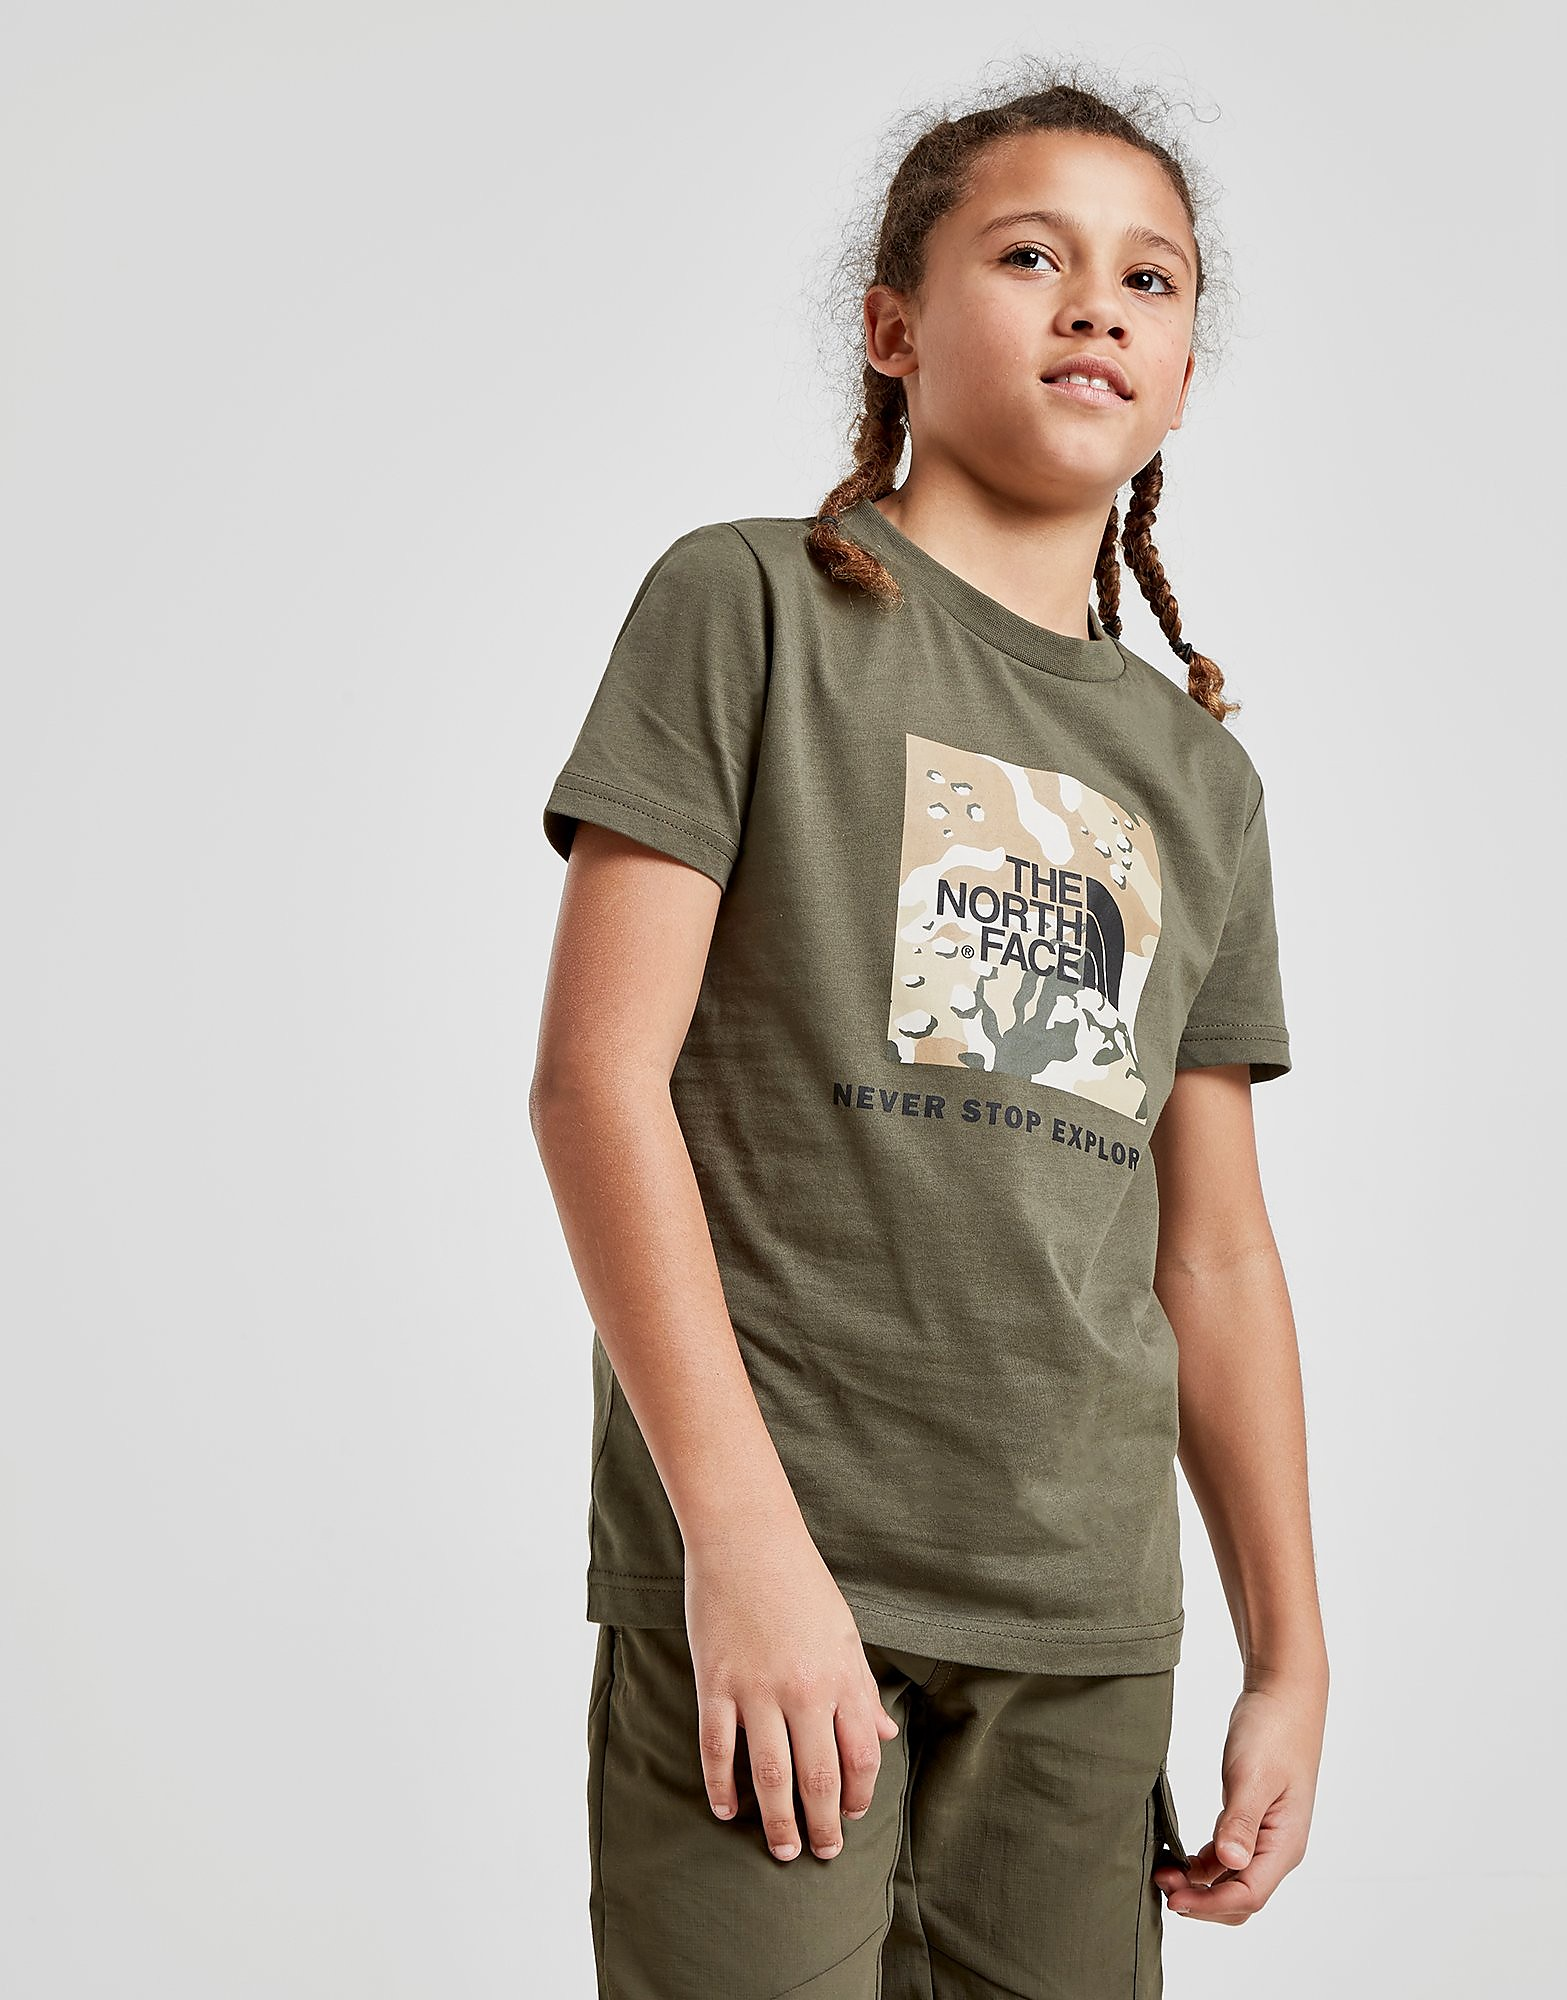 The North Face Box Short Sleeve T-Shirt Junior - Groen - Kind